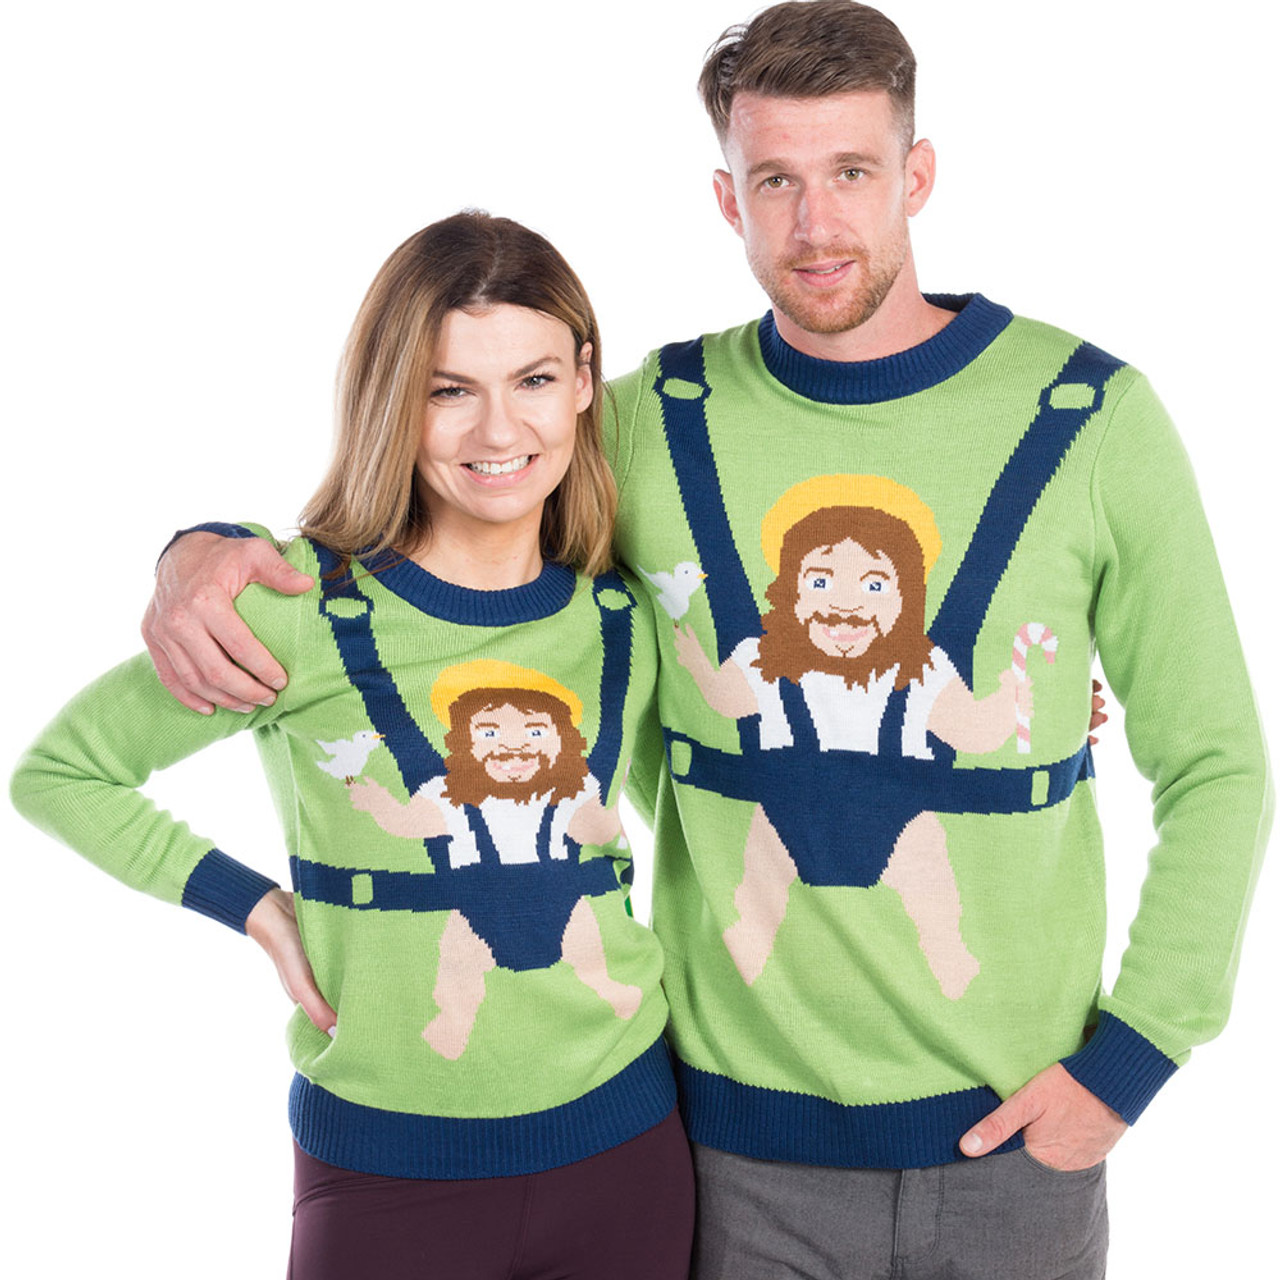 Baby Jesus Christmas Sweater | Retrofestive.ca